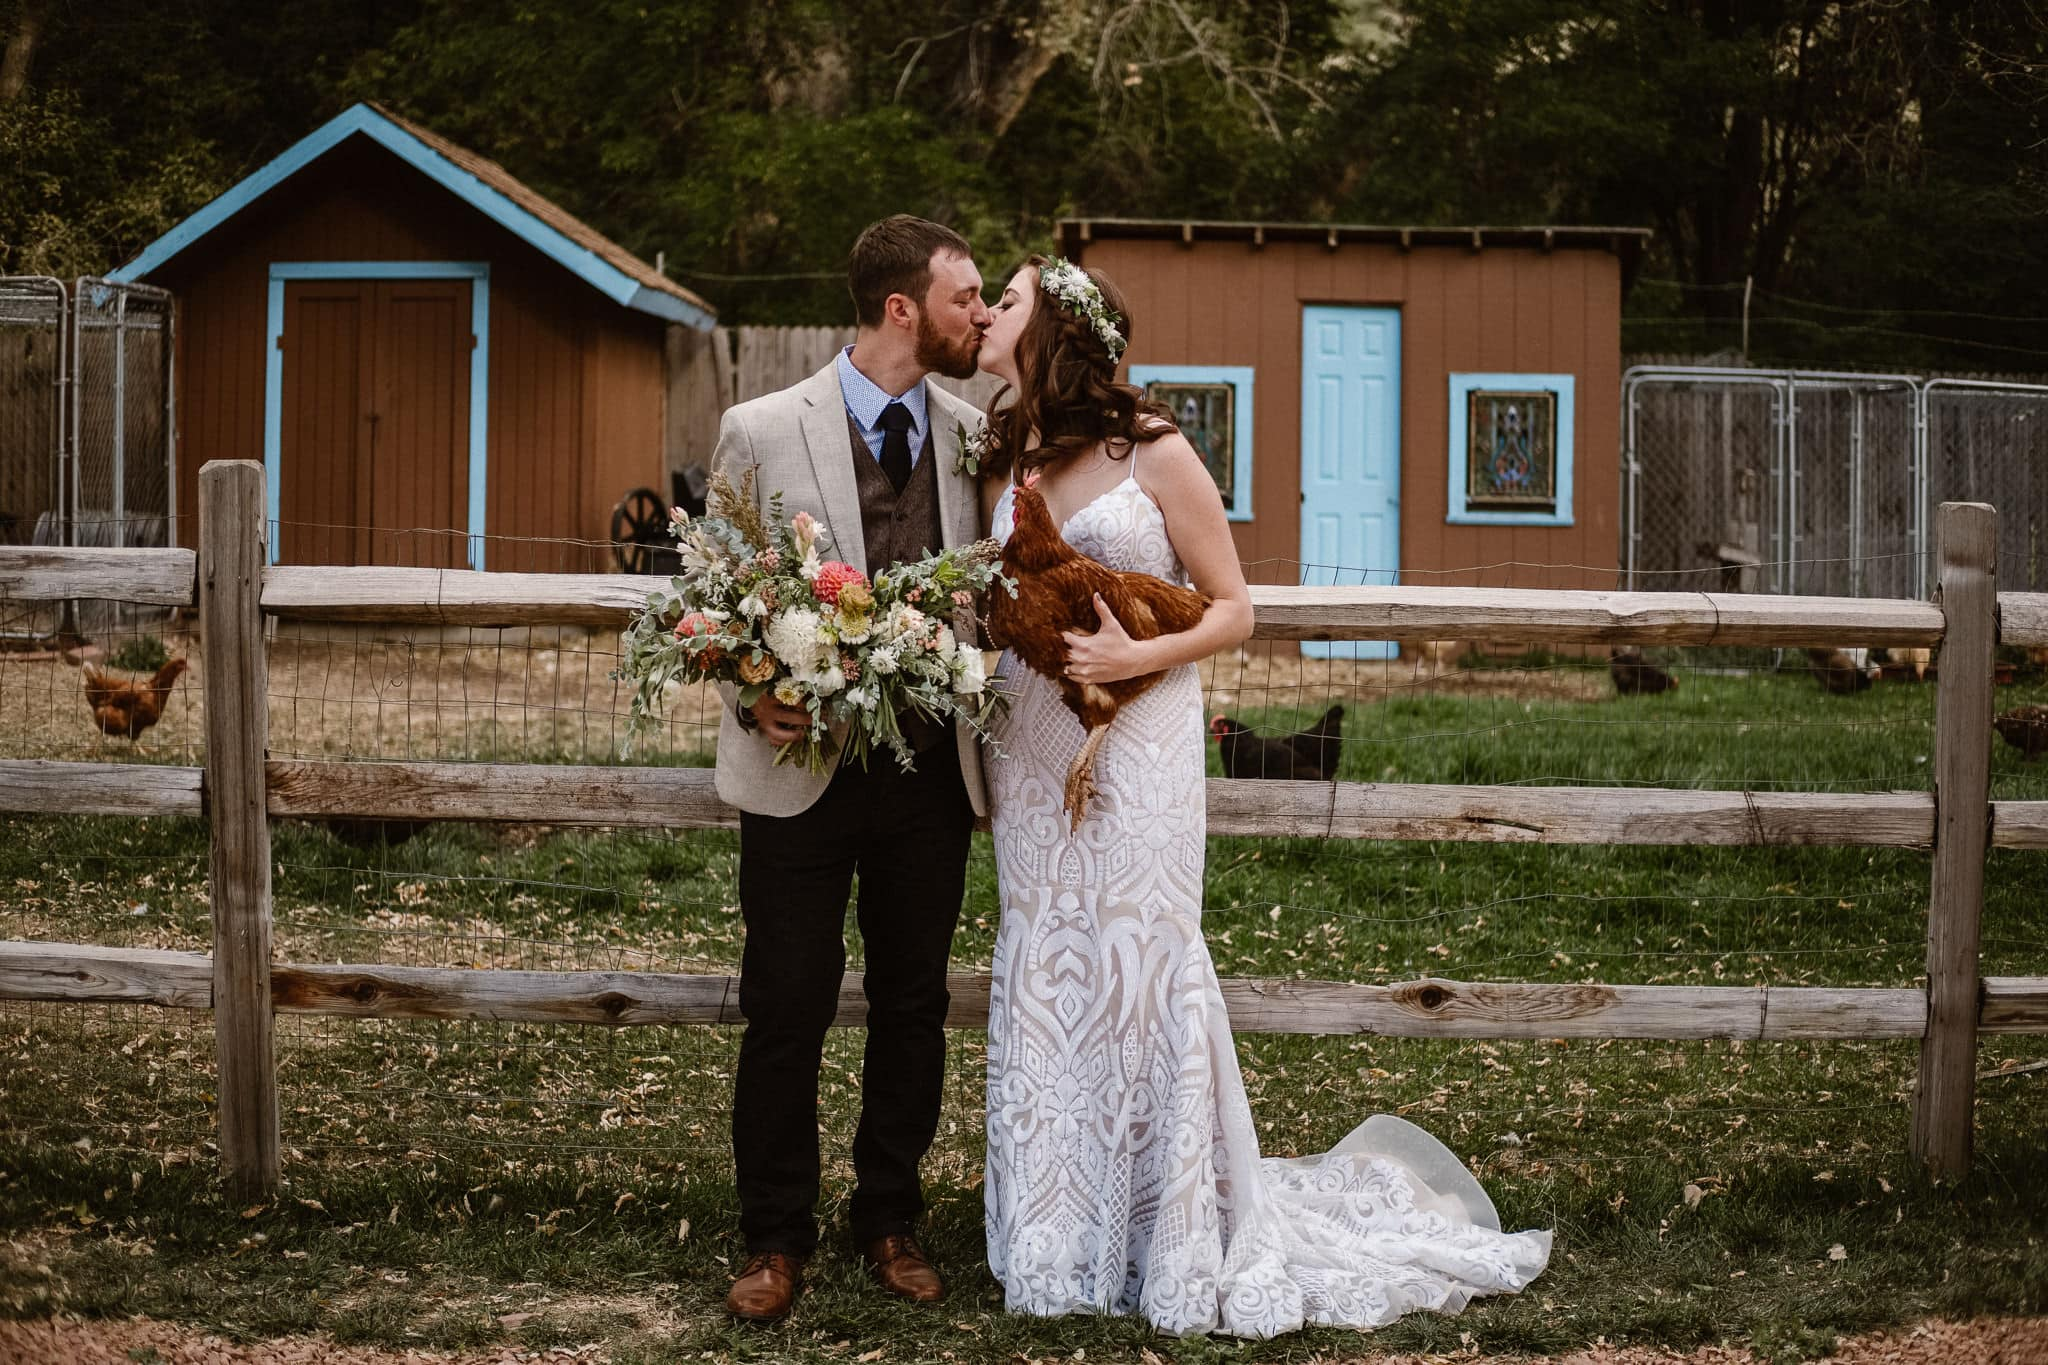 Lyons Farmette Wedding Photographer, Boulder Colorado intimate wedding photographer, farm wedding